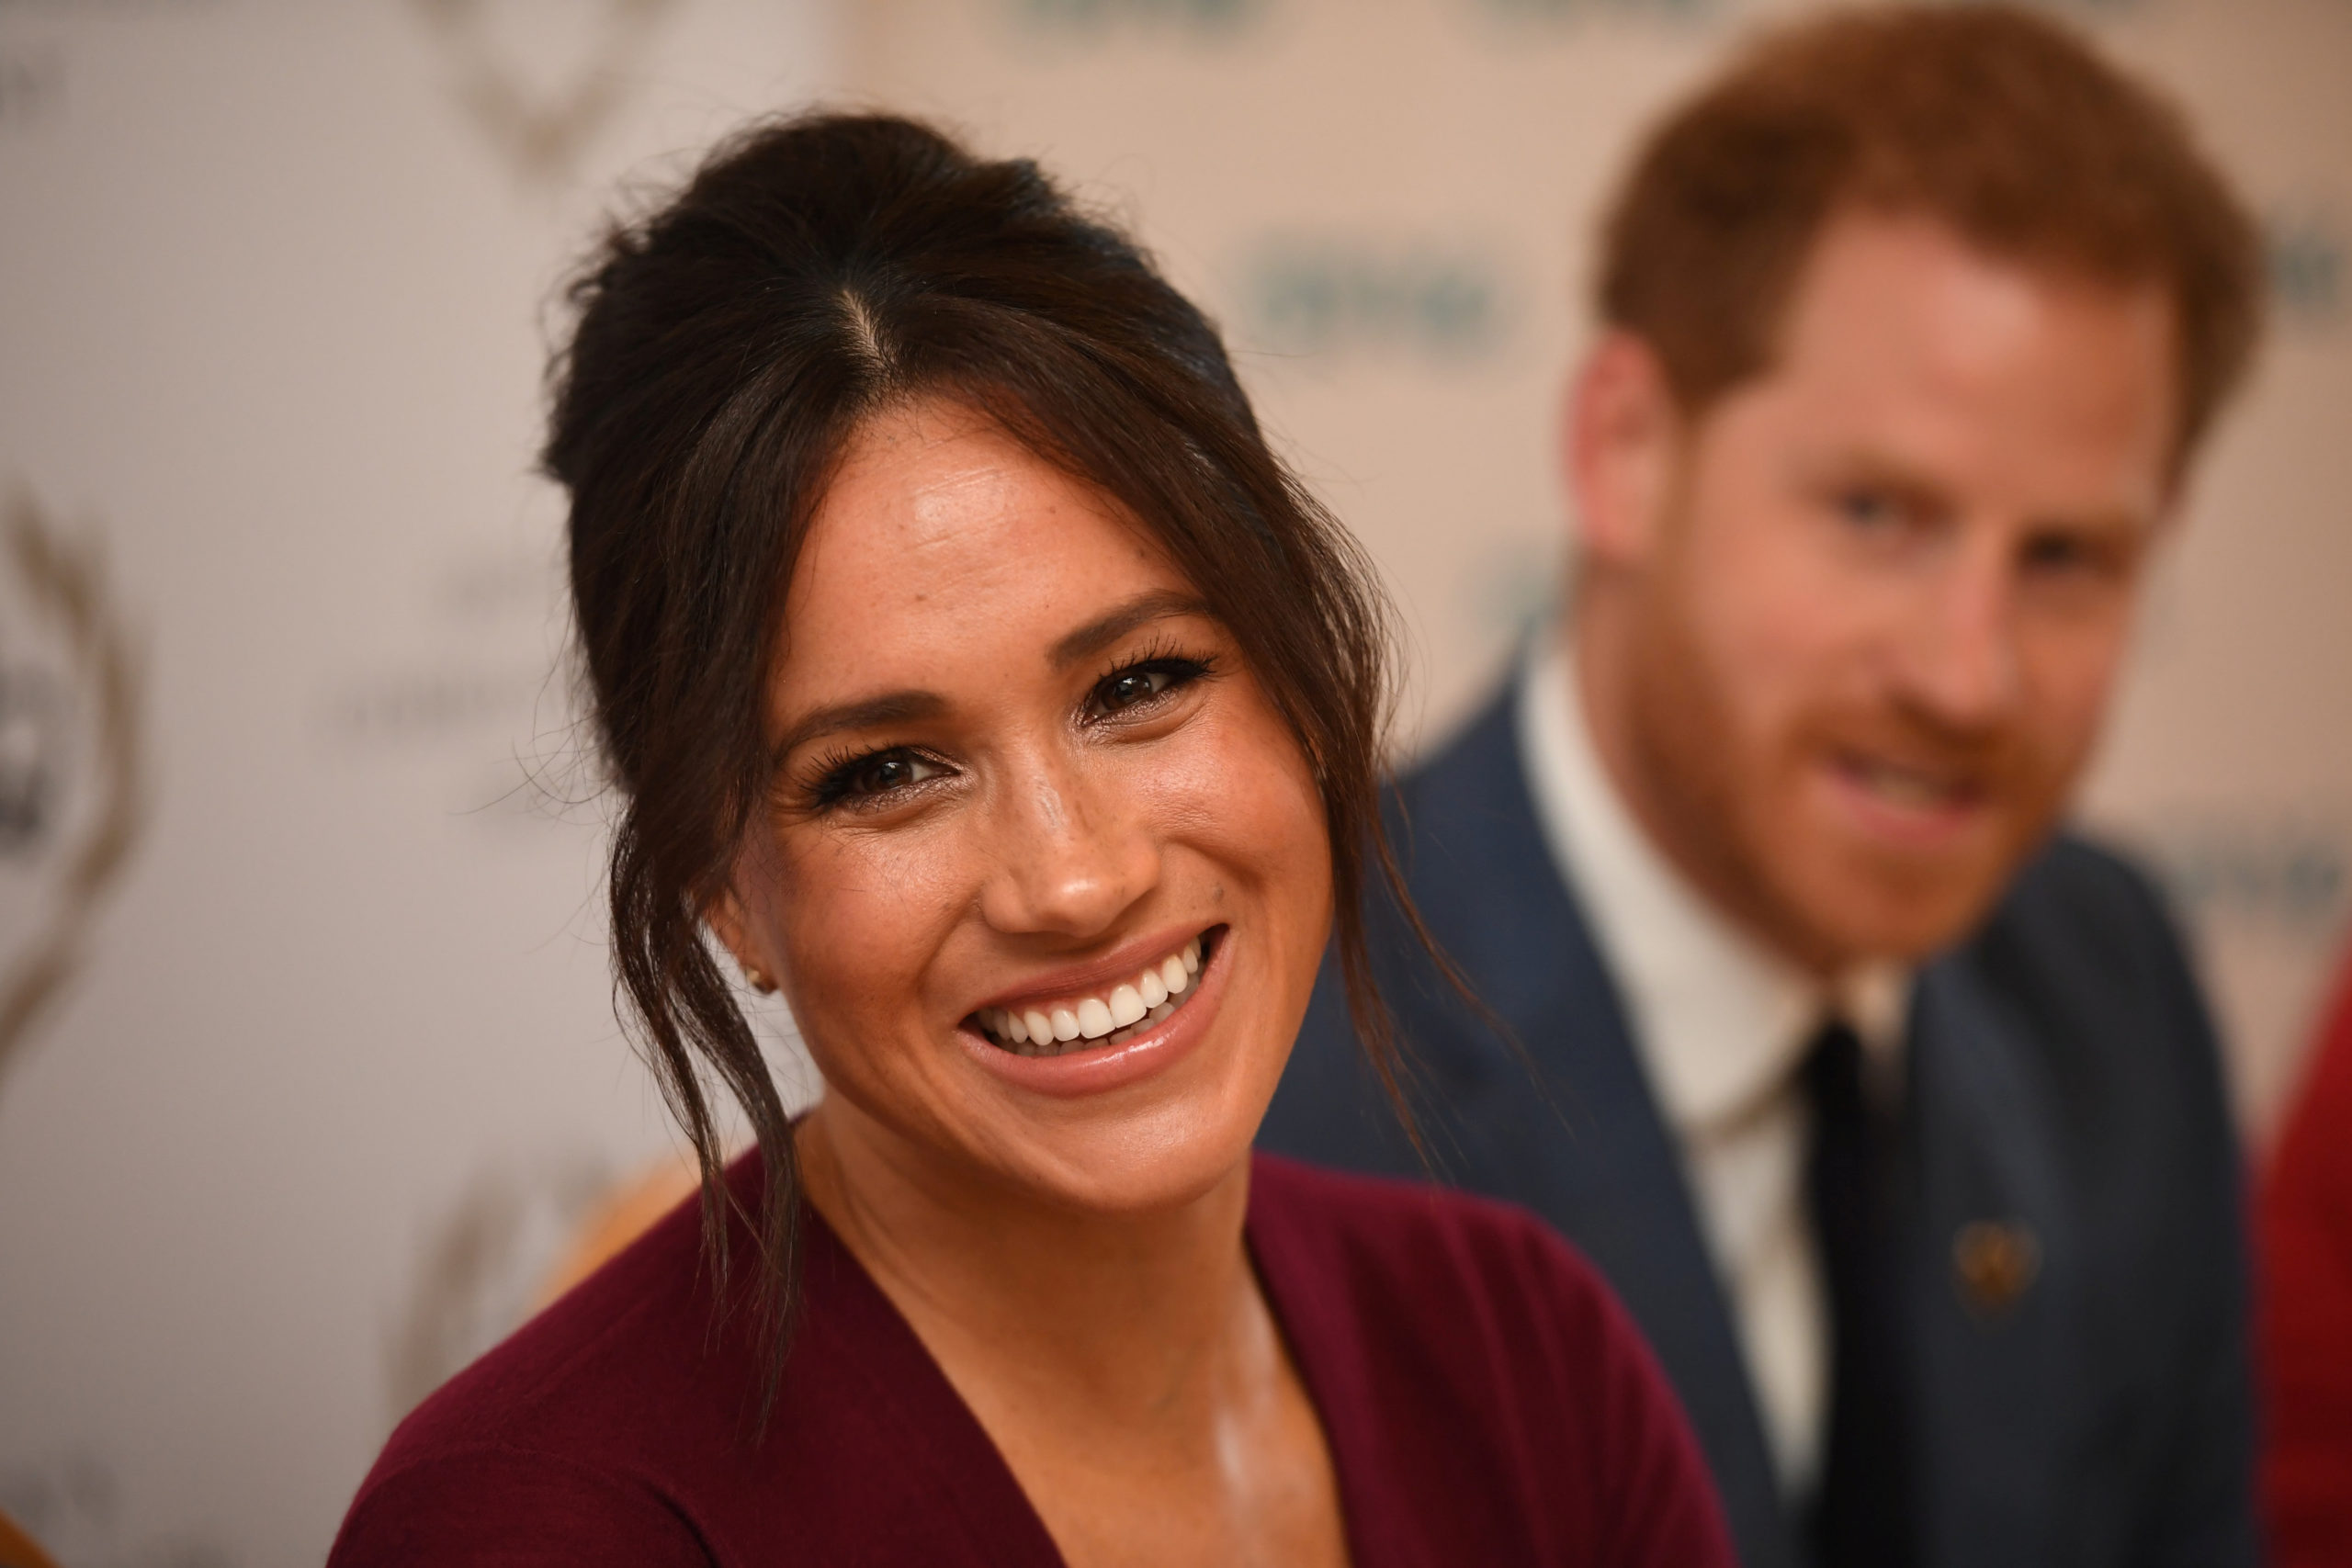 Meghan 'allowed individual to speak to Finding Freedom authors to prevent misinformation', court documents reveal